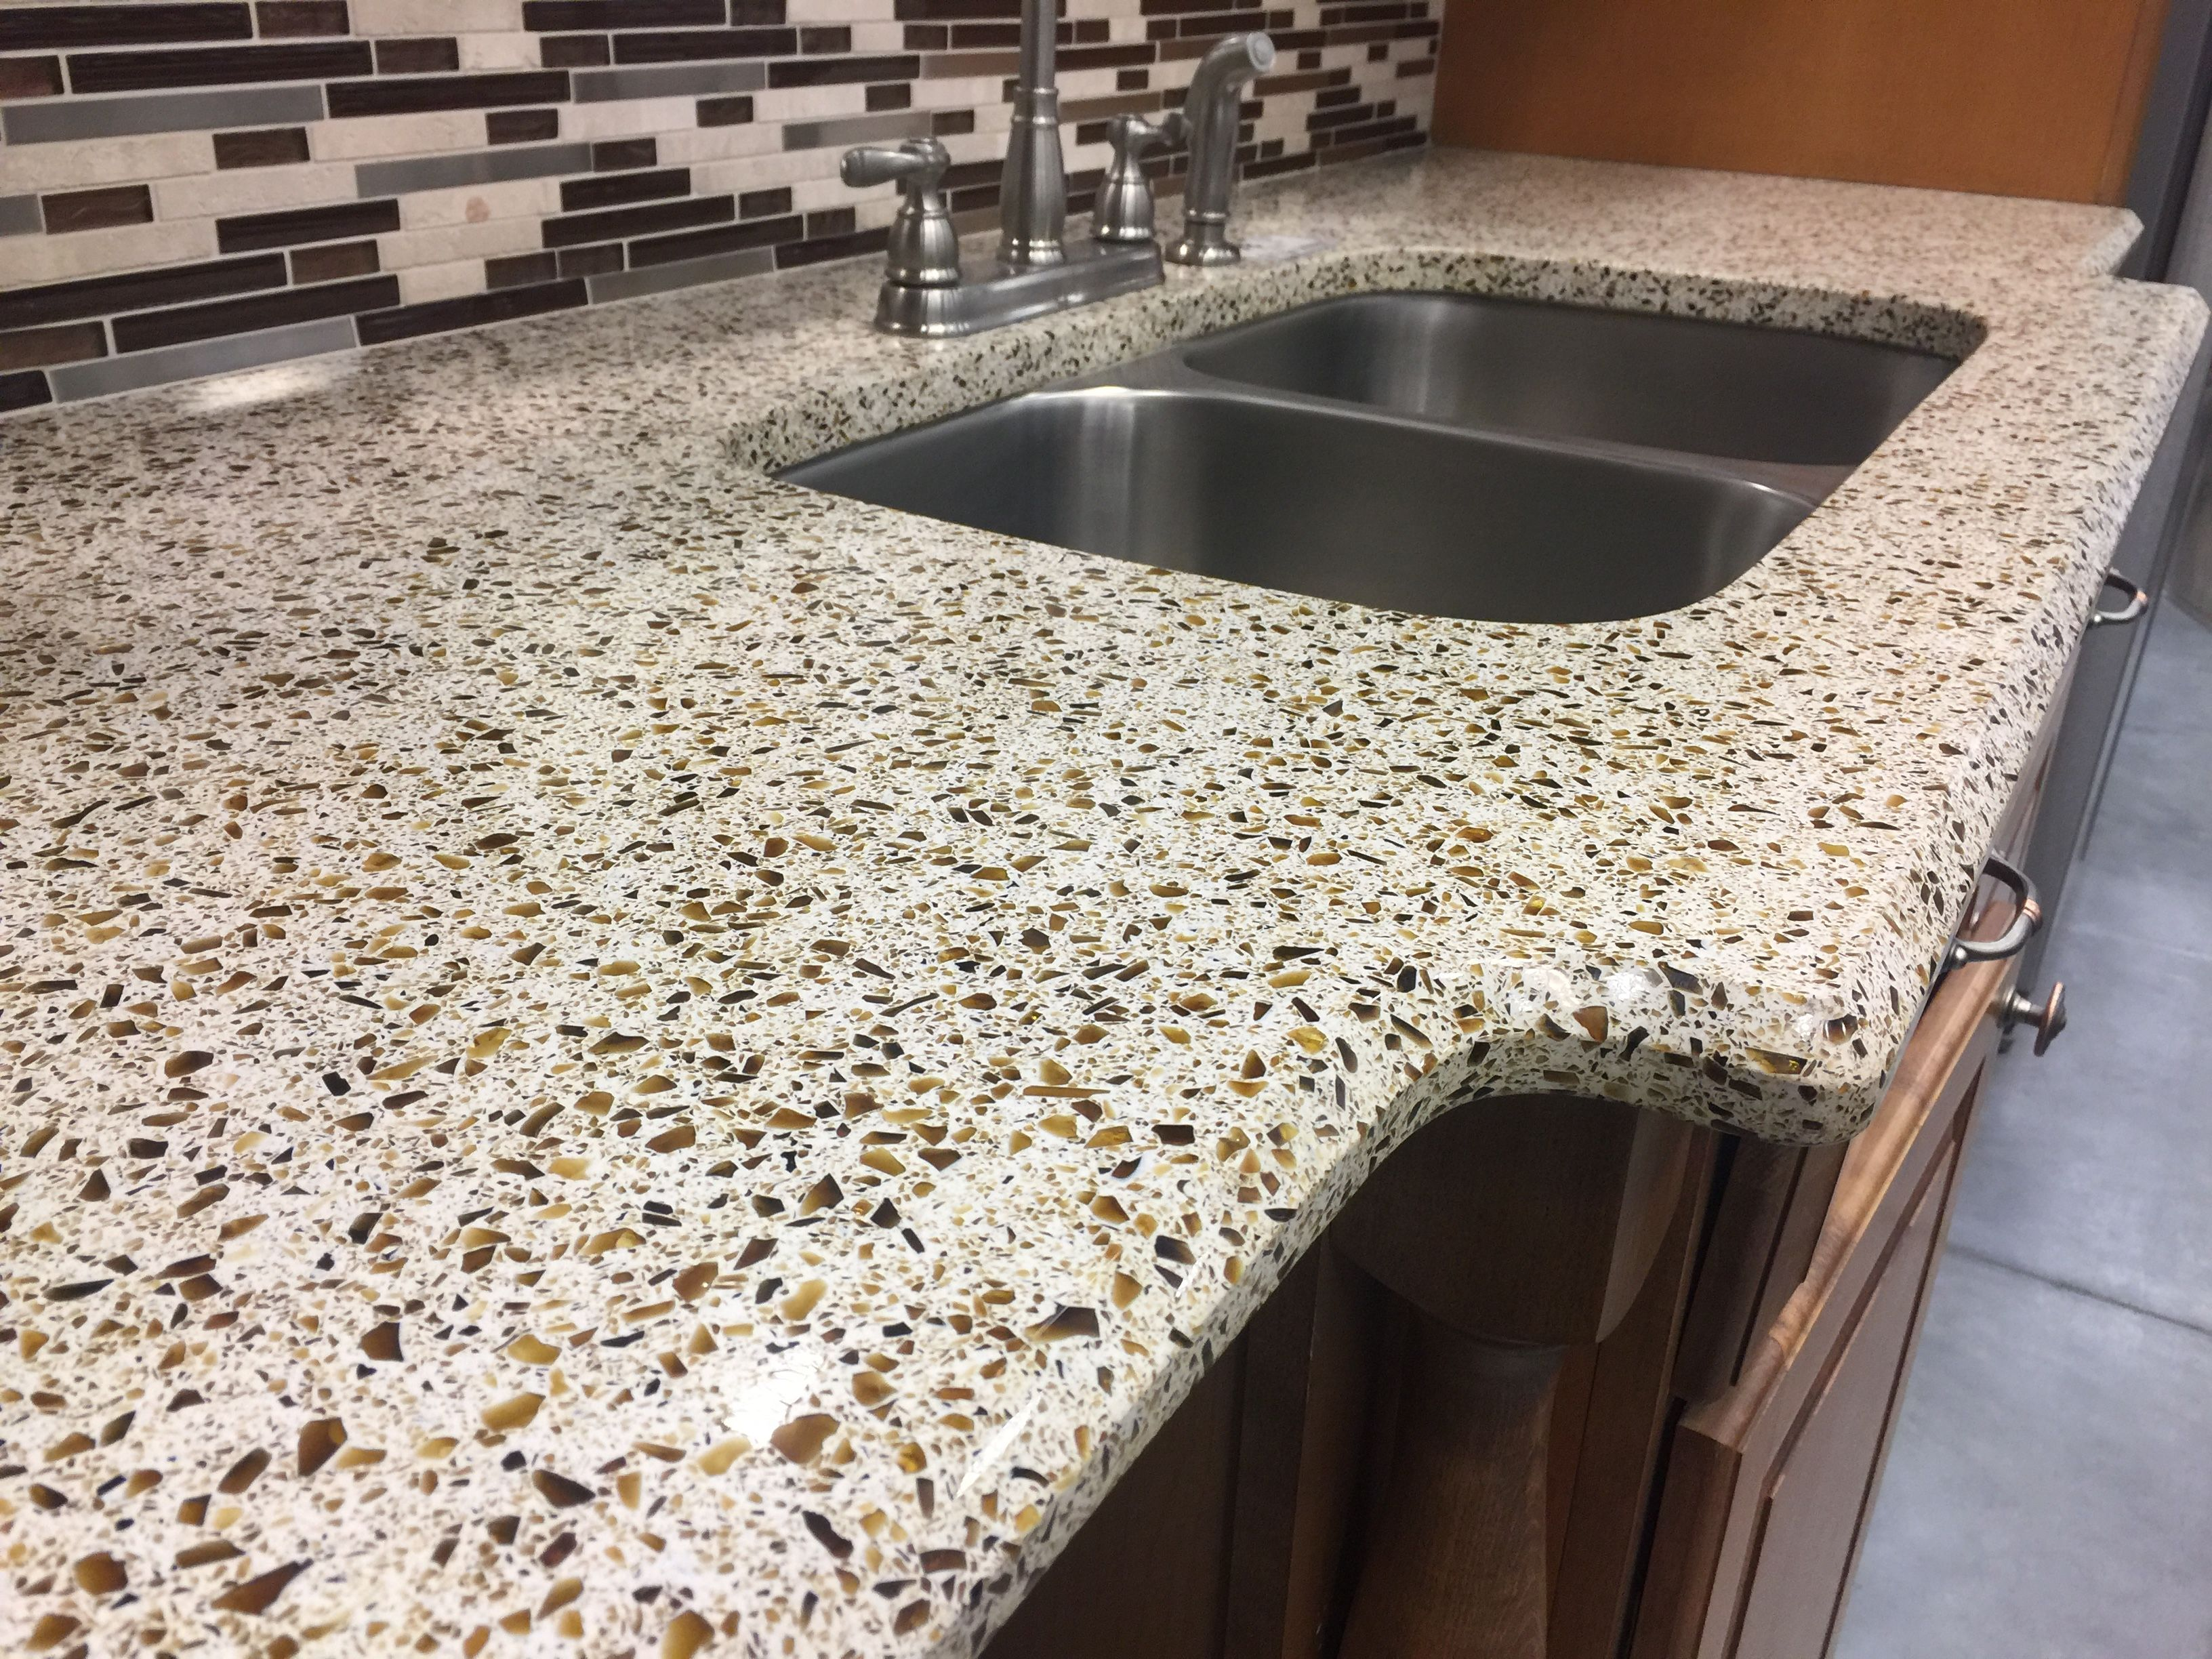 Curava Recycled Glass Countertops What Would You Do With These Wheat Counters From Curava